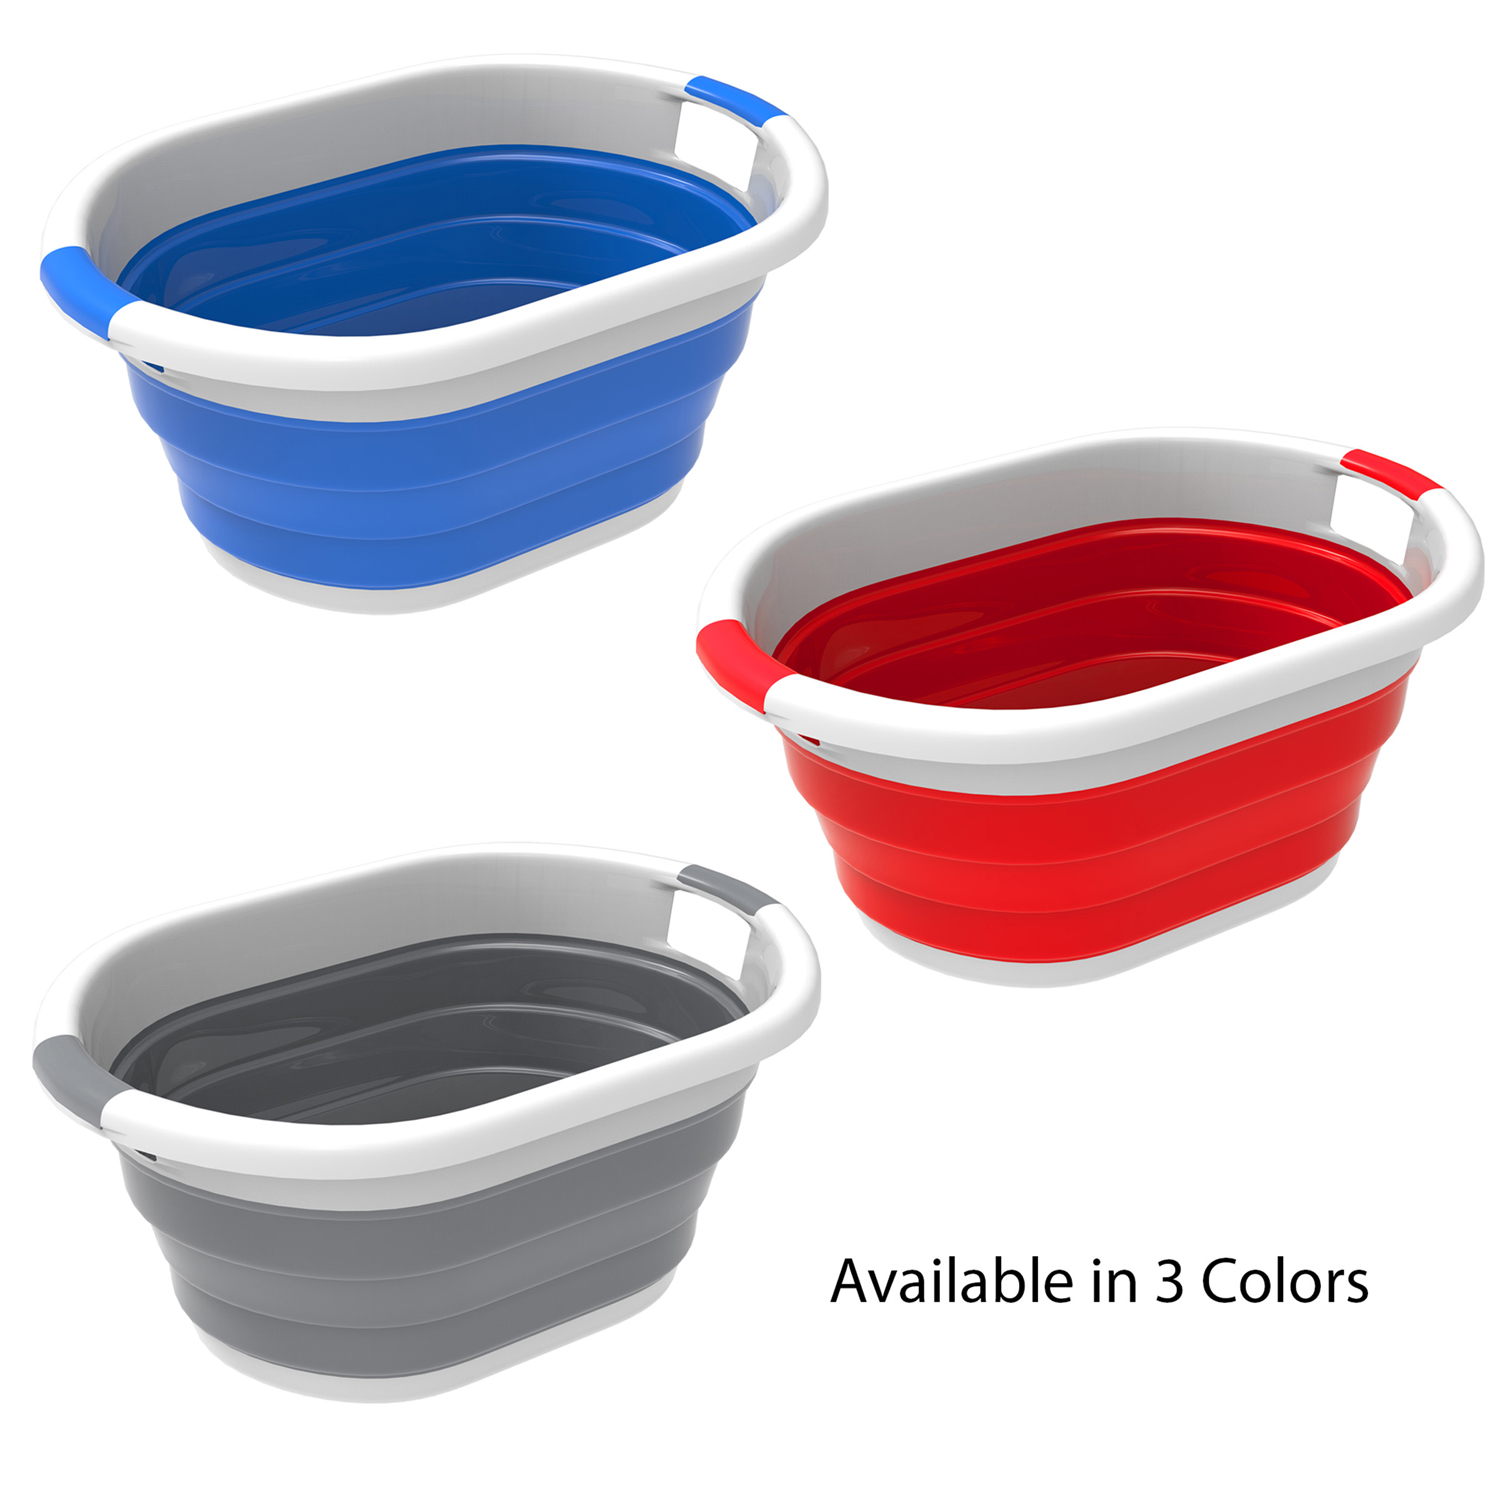 Outdoor Blue Multi Use Collapsible Wash Basin